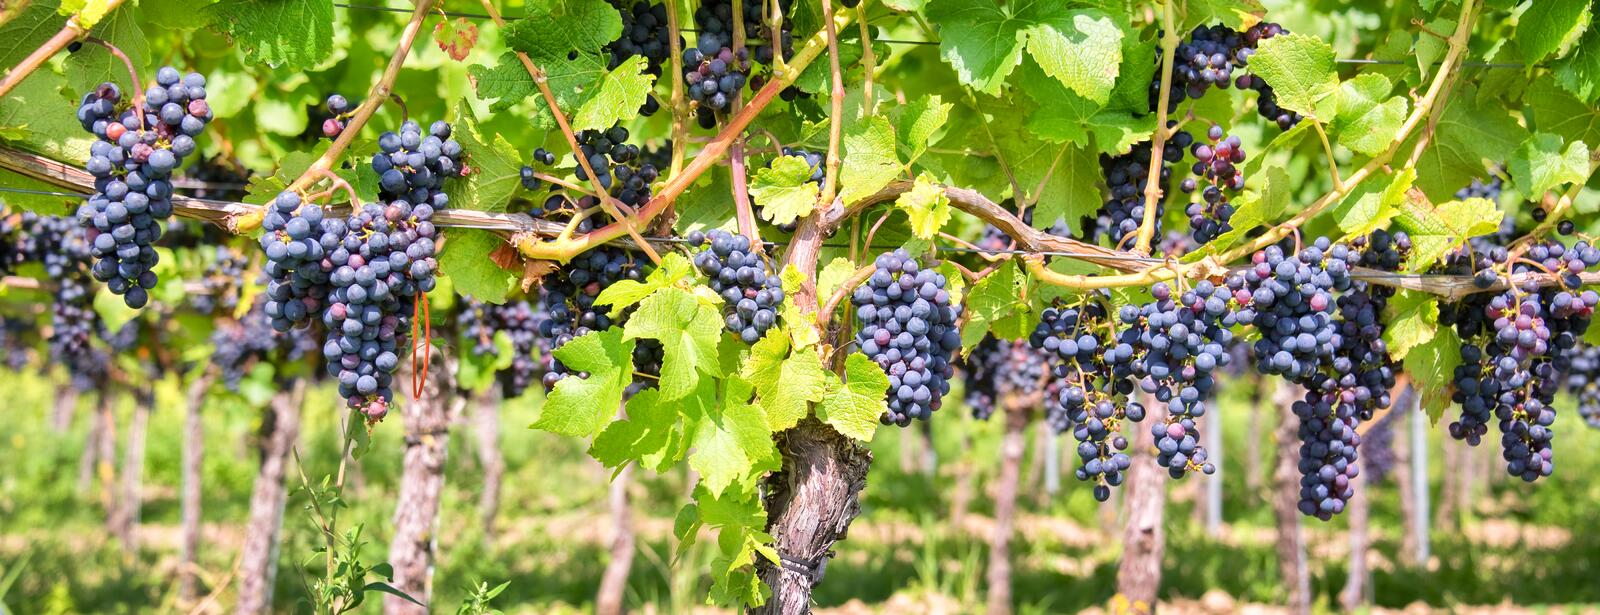 Close up on red black grapes in a vineyard, panoramic background, grape harvest royalty free stock image